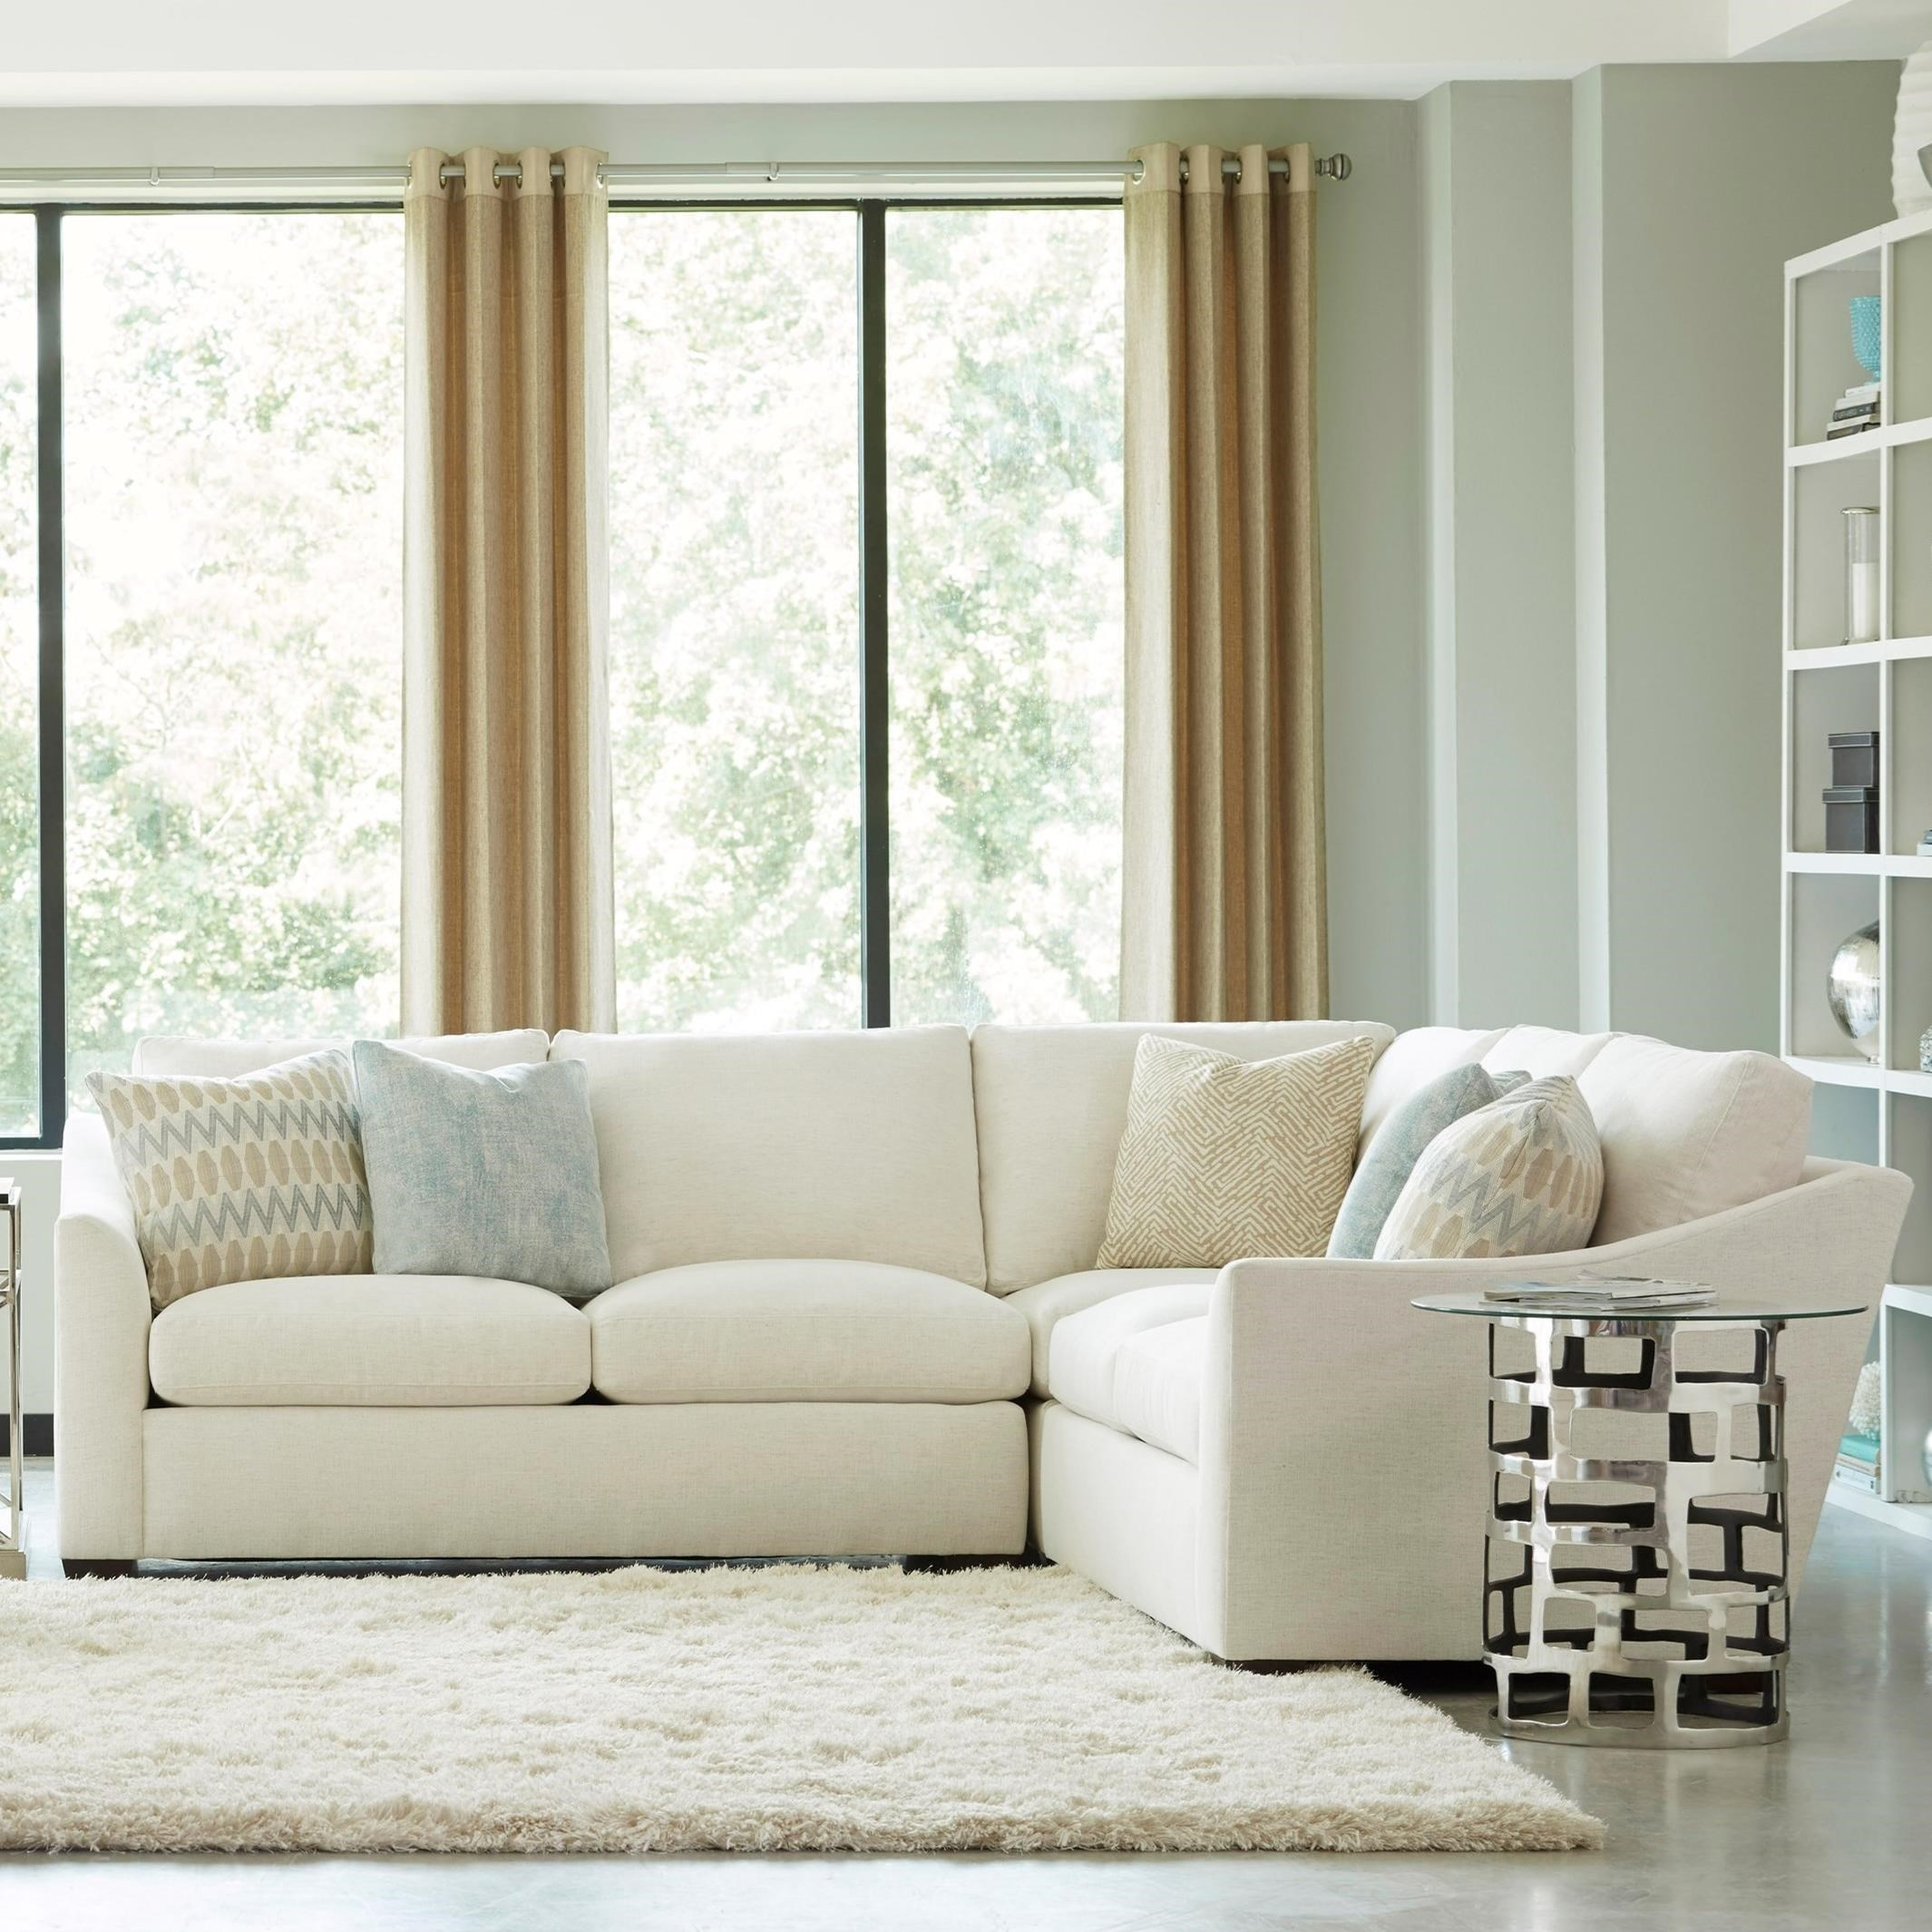 Plush 2-Piece Sectional by Huntington House at Belfort Furniture